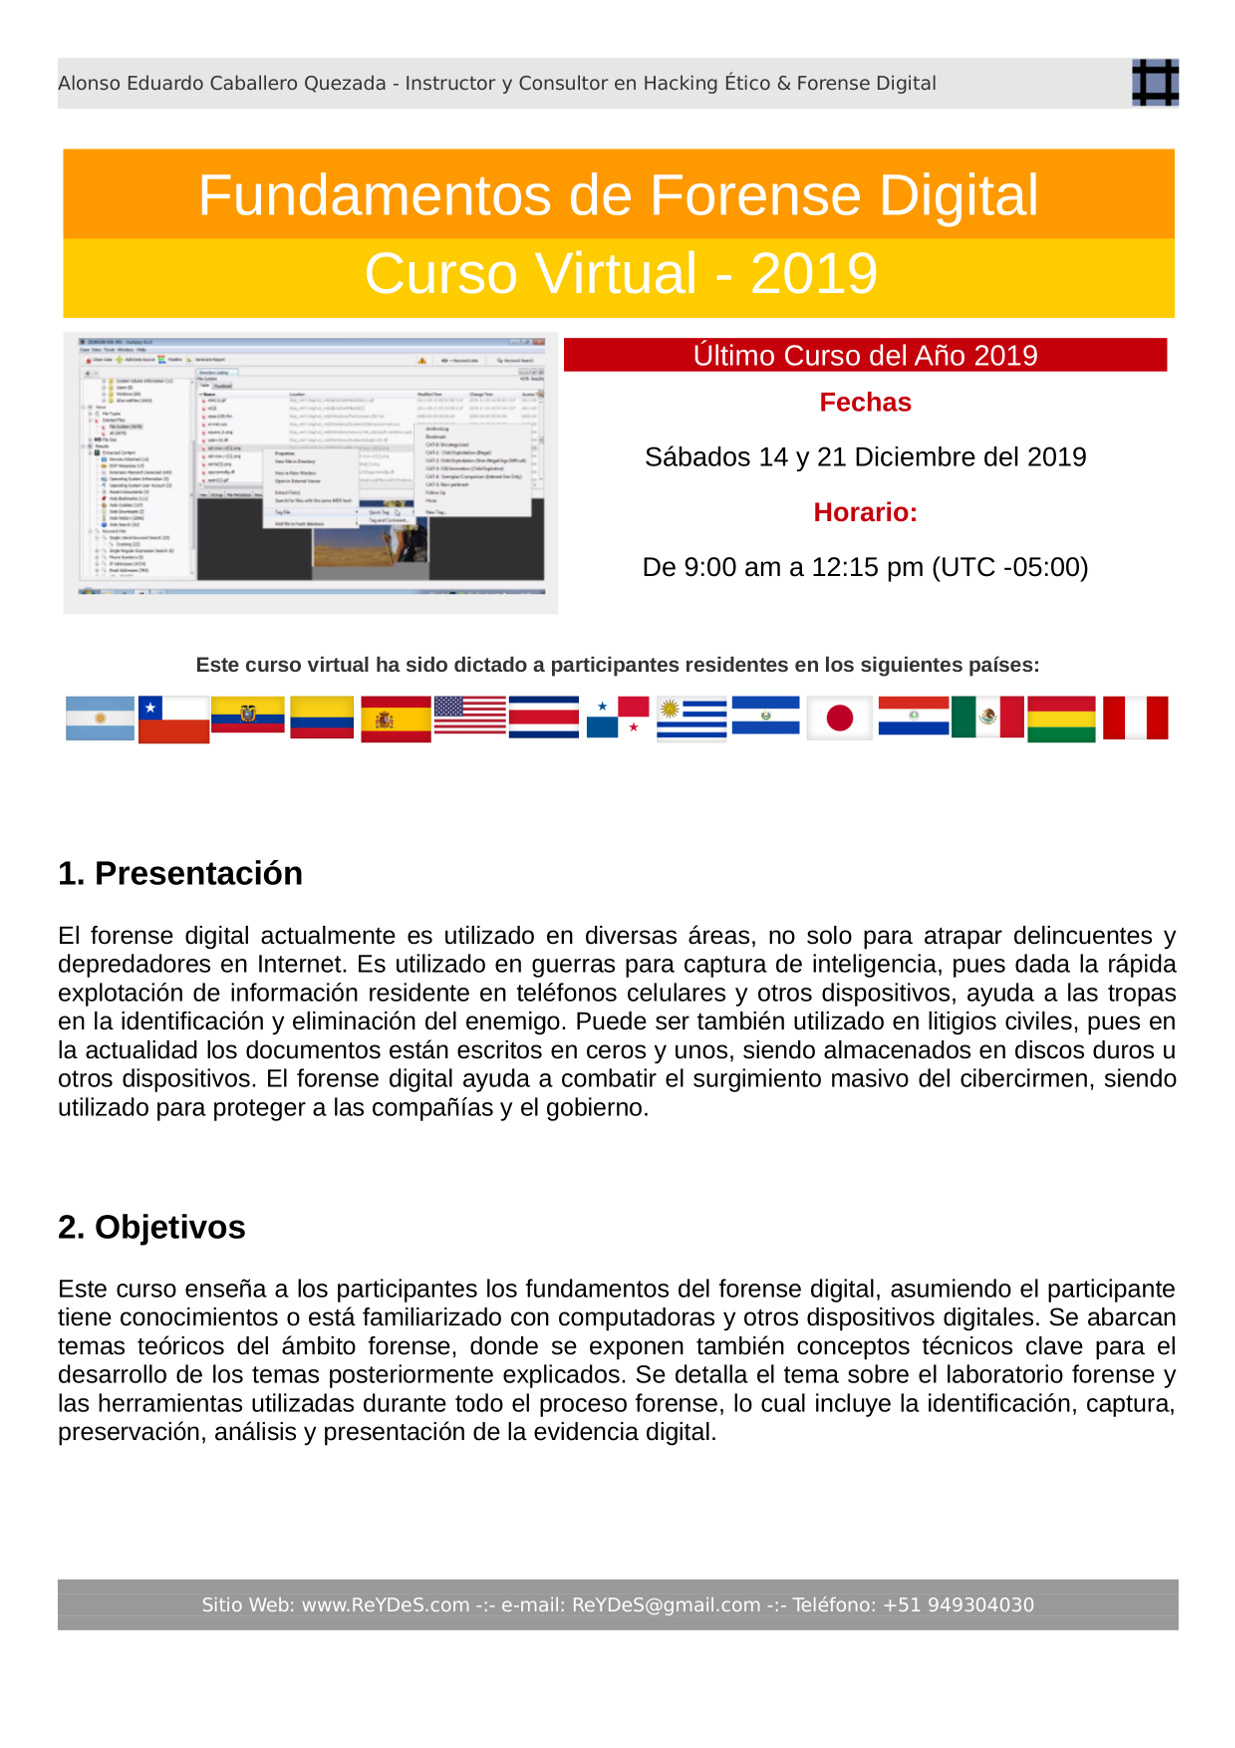 Único Curso Virtual Fundamentos de Forense Digital 2019